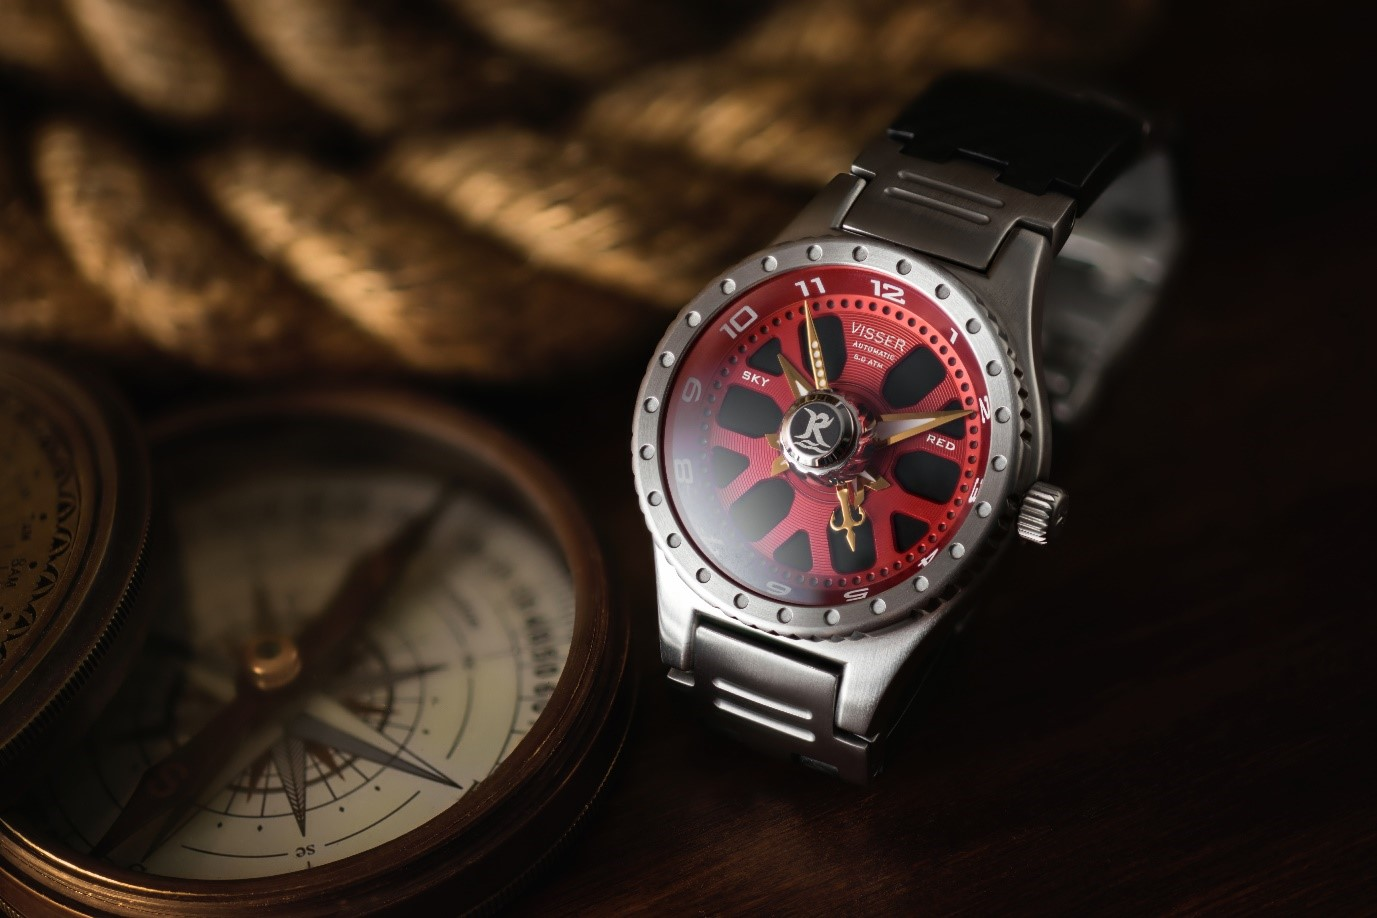 How to photograph a watch by Rob baggs